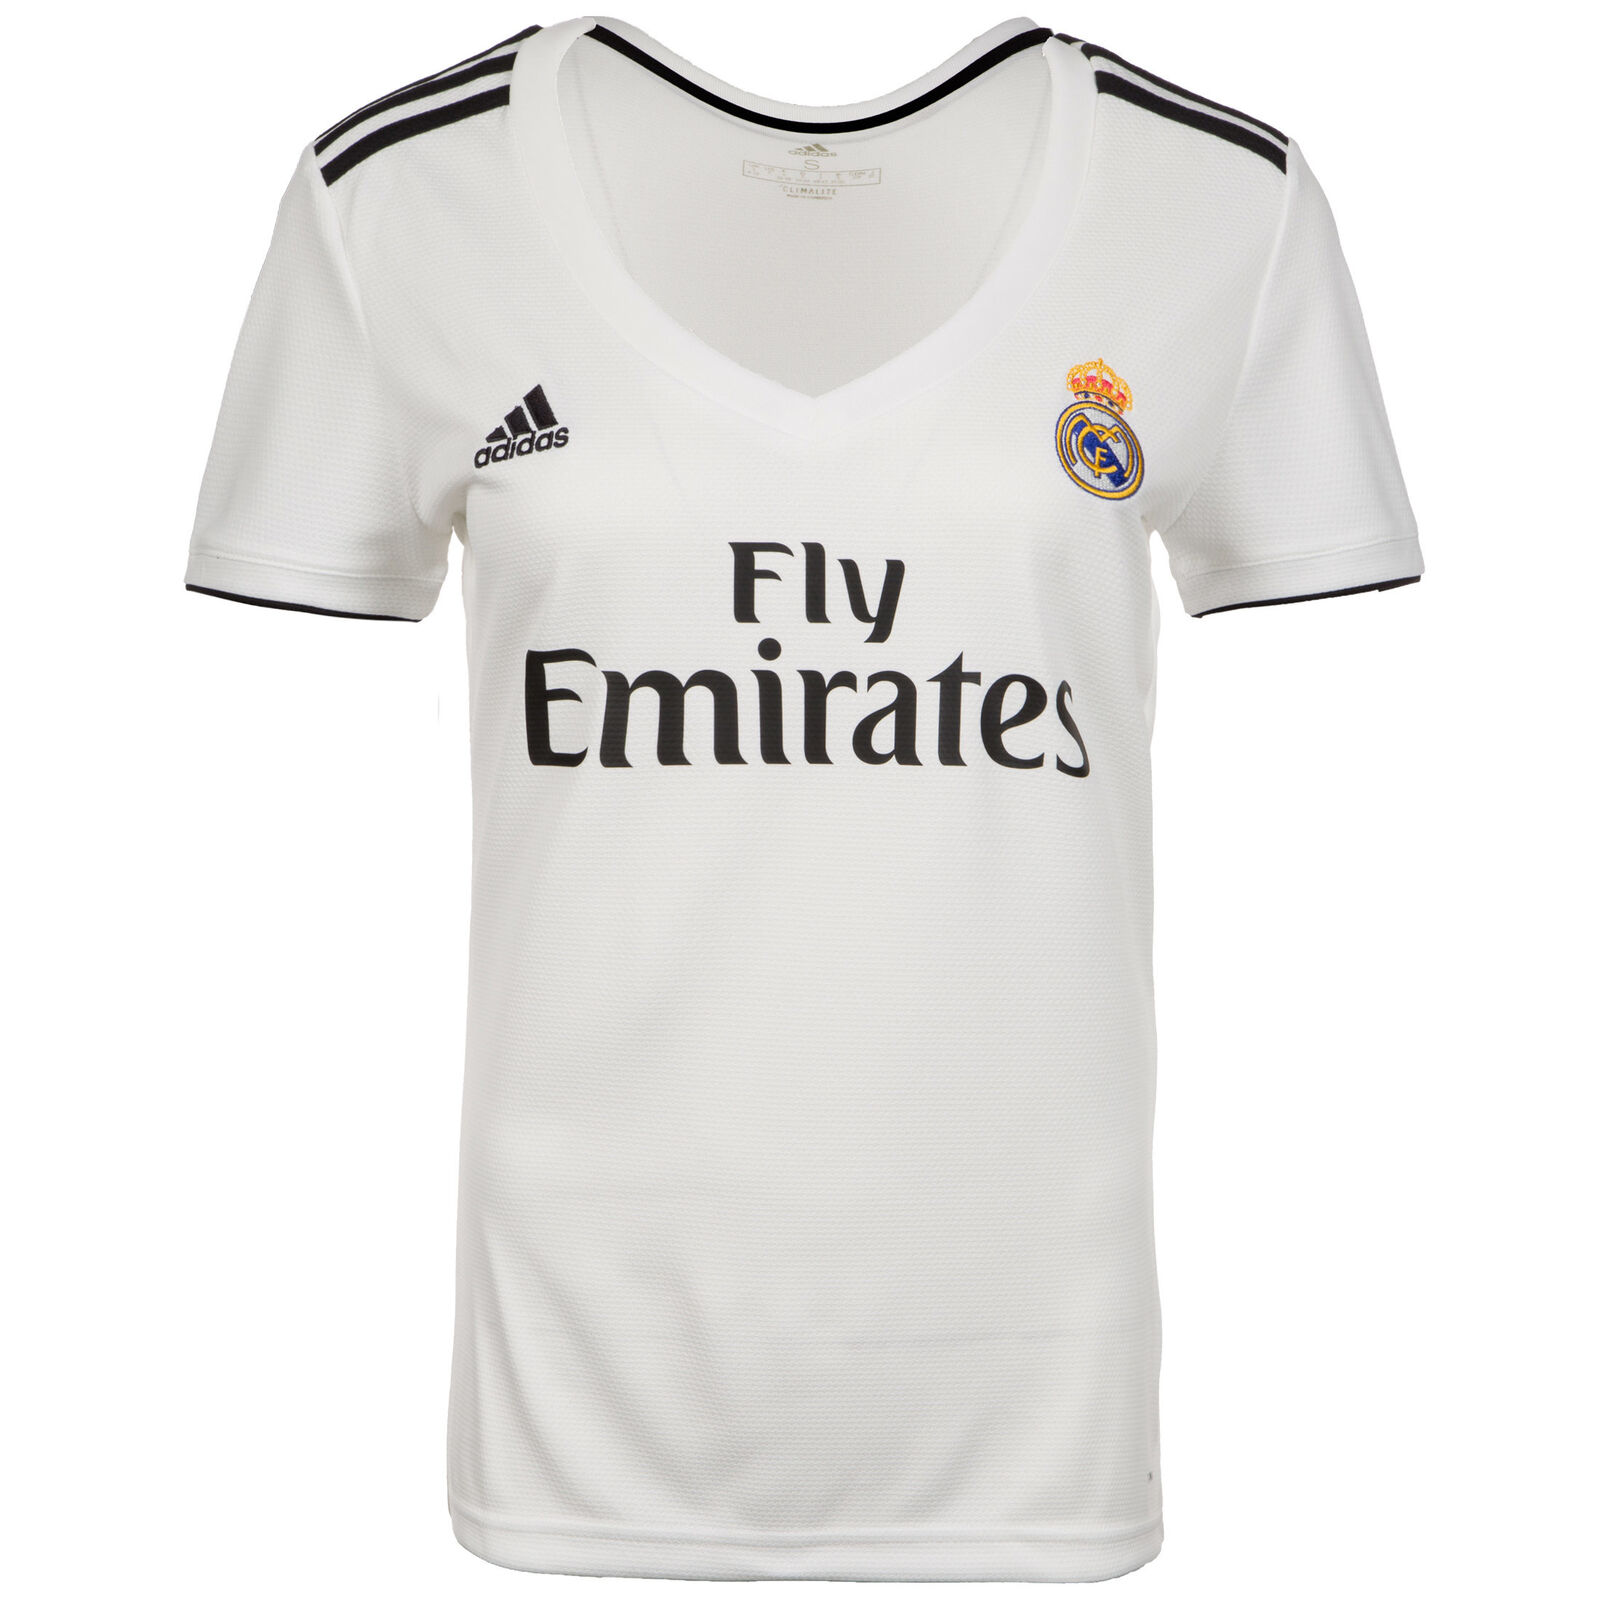 Adidas Performance Real Madrid Trikot Home 2018 2019 2019 2019 Damen Weiß NEU 2c0338